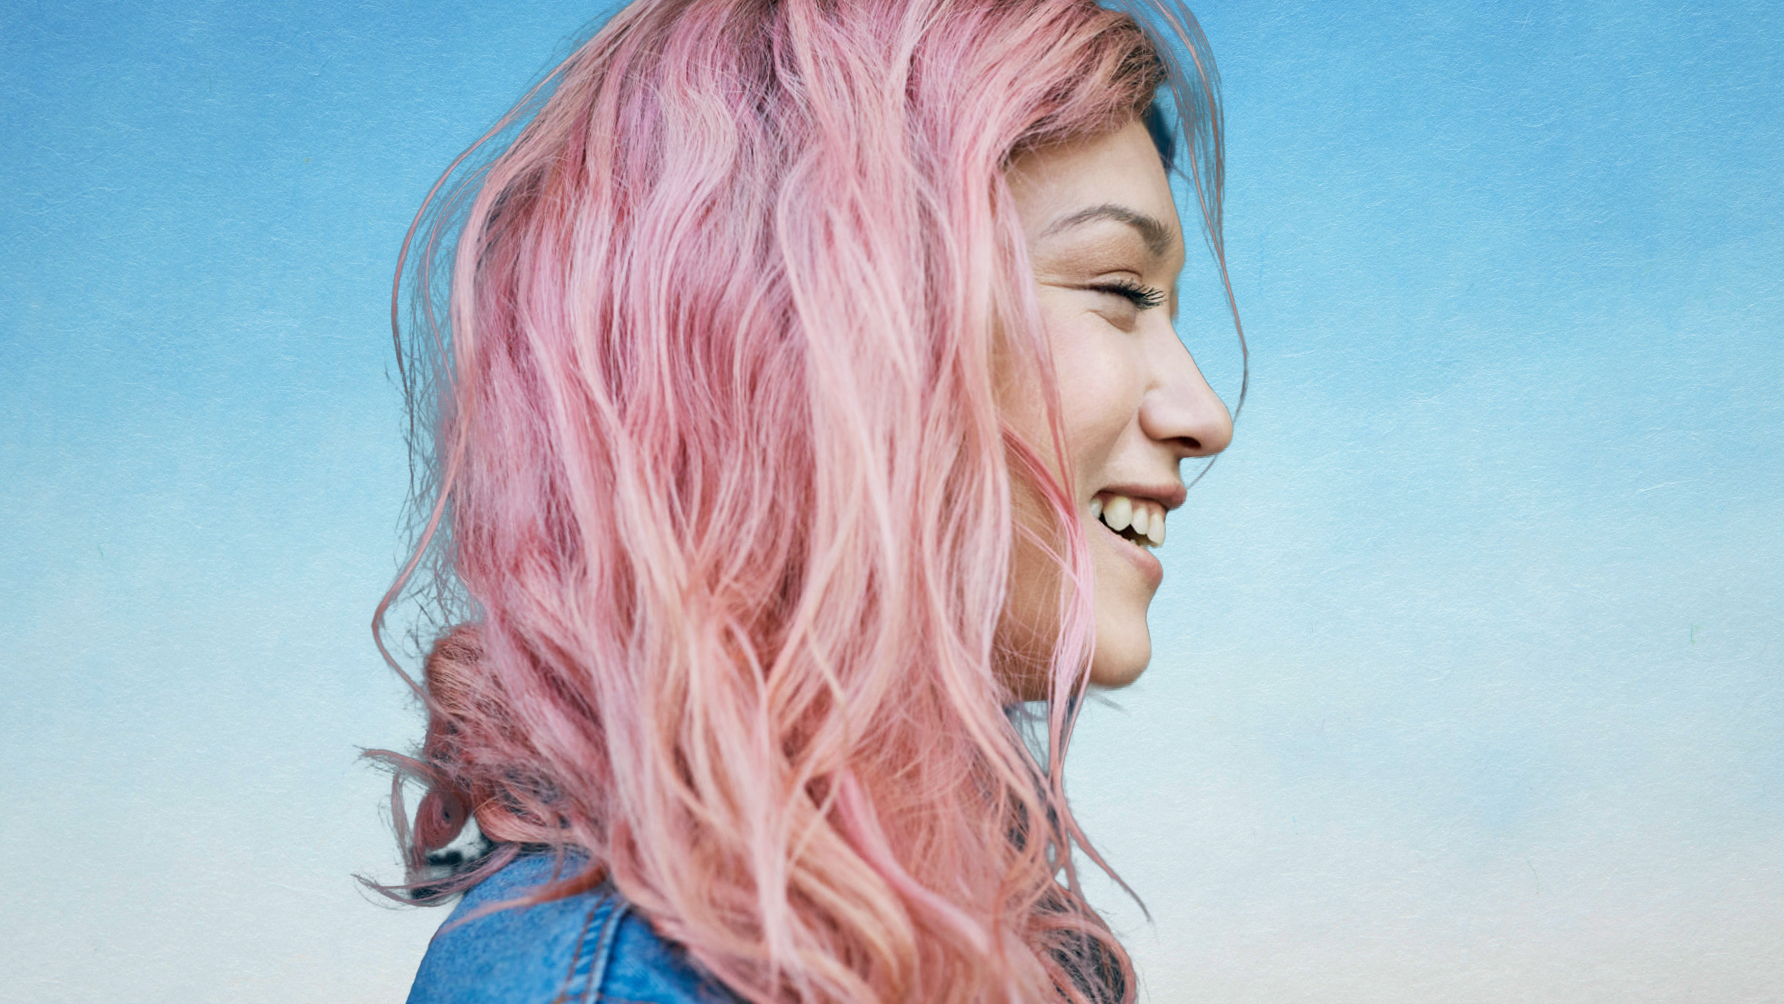 best-products-for-color-treated-hair: woman with pink hair laughing